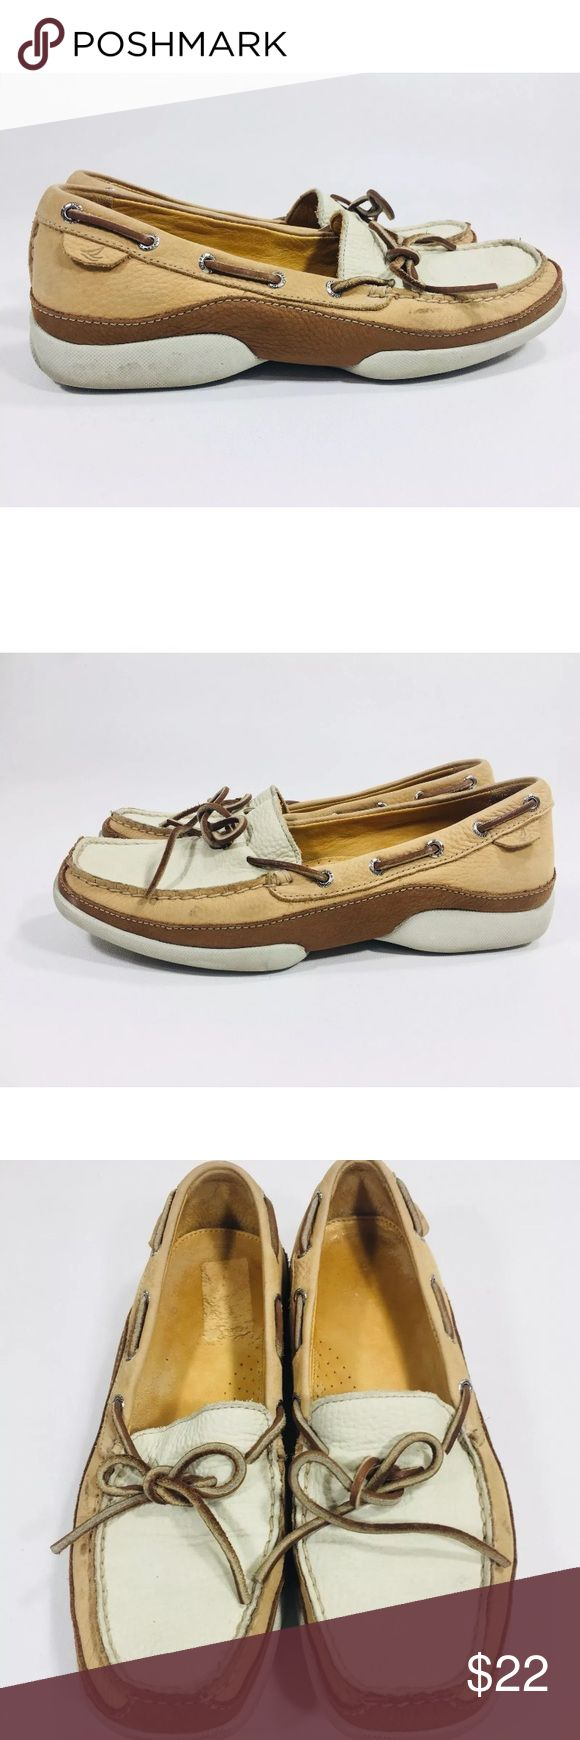 Sperry Boat shoes Men's leather Shoes size 9 Sperry Boat shoes Cream / Tan / Brown Men's leather Slip-on Shoes size 9 Ties Sperry Shoes Boat Shoes